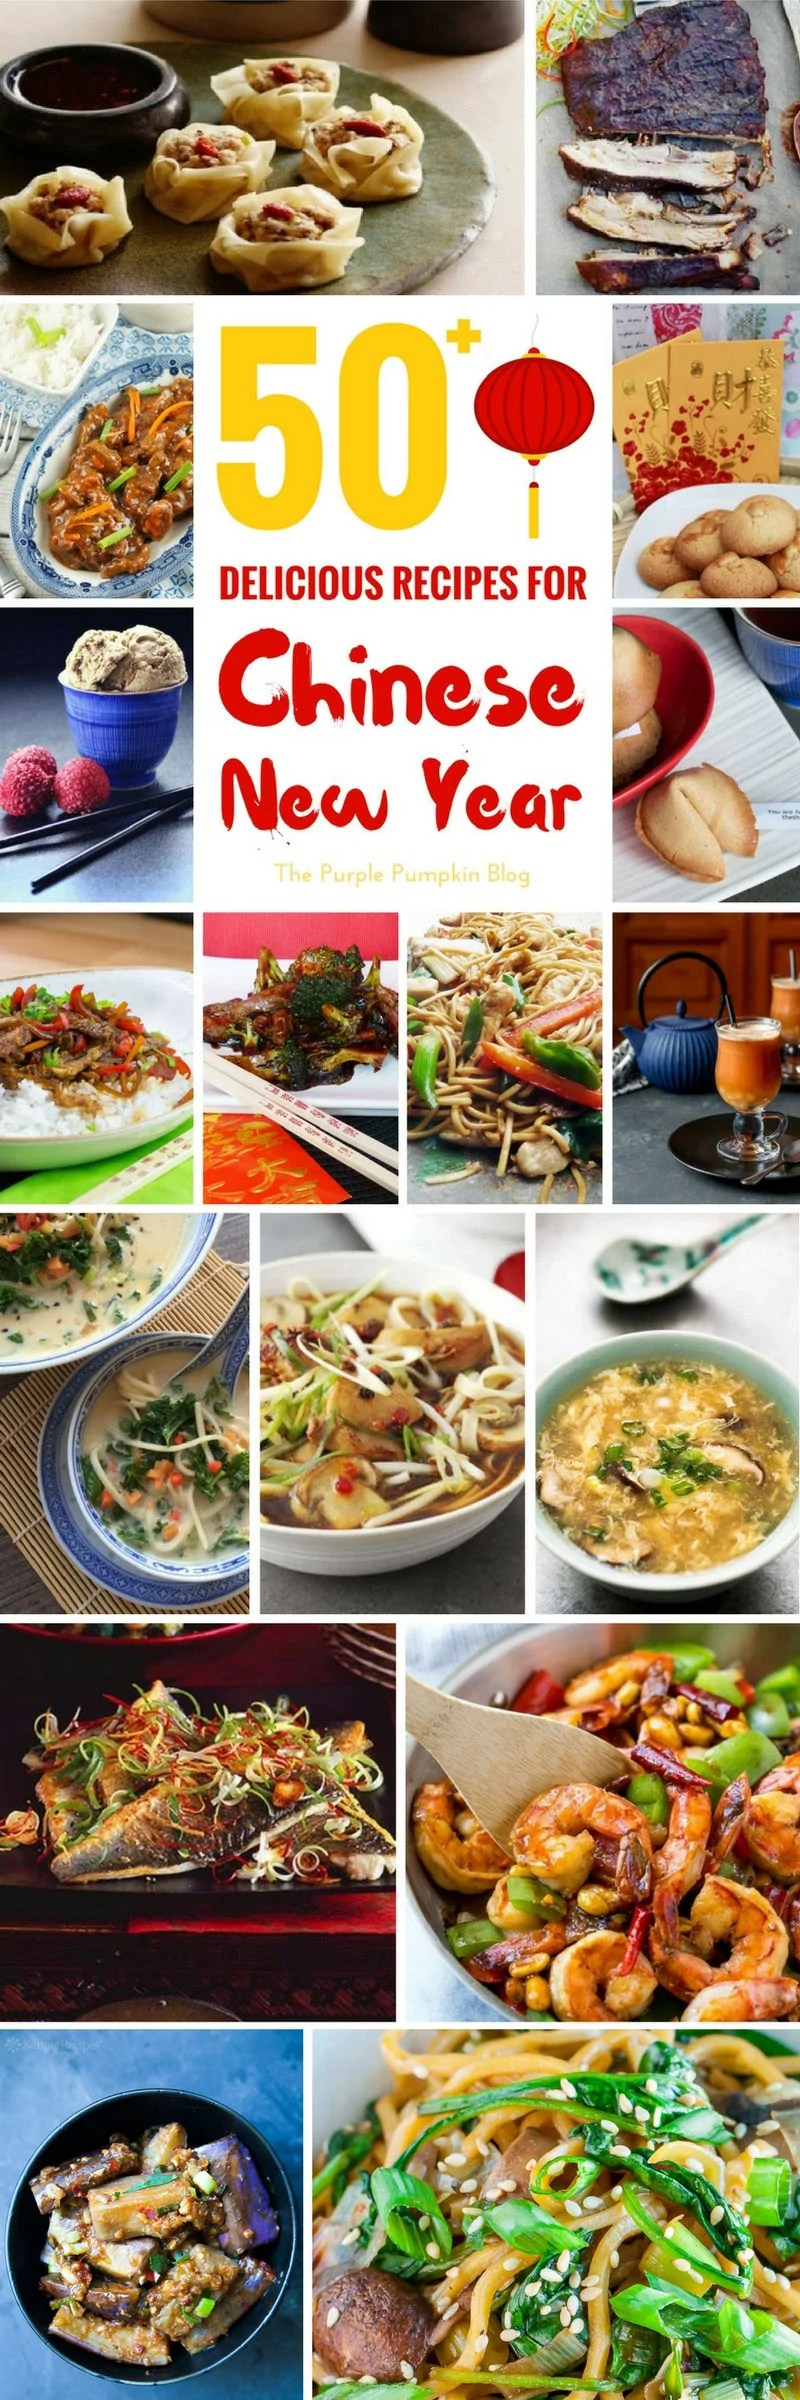 50+ Delicious Recipes for Chinese New Year - never be stuck for Asian and Chinese recipes again - a brilliant round up over 50 recipes. Includes apps, soups, entrees, vegetarian, desserts, and drinks!